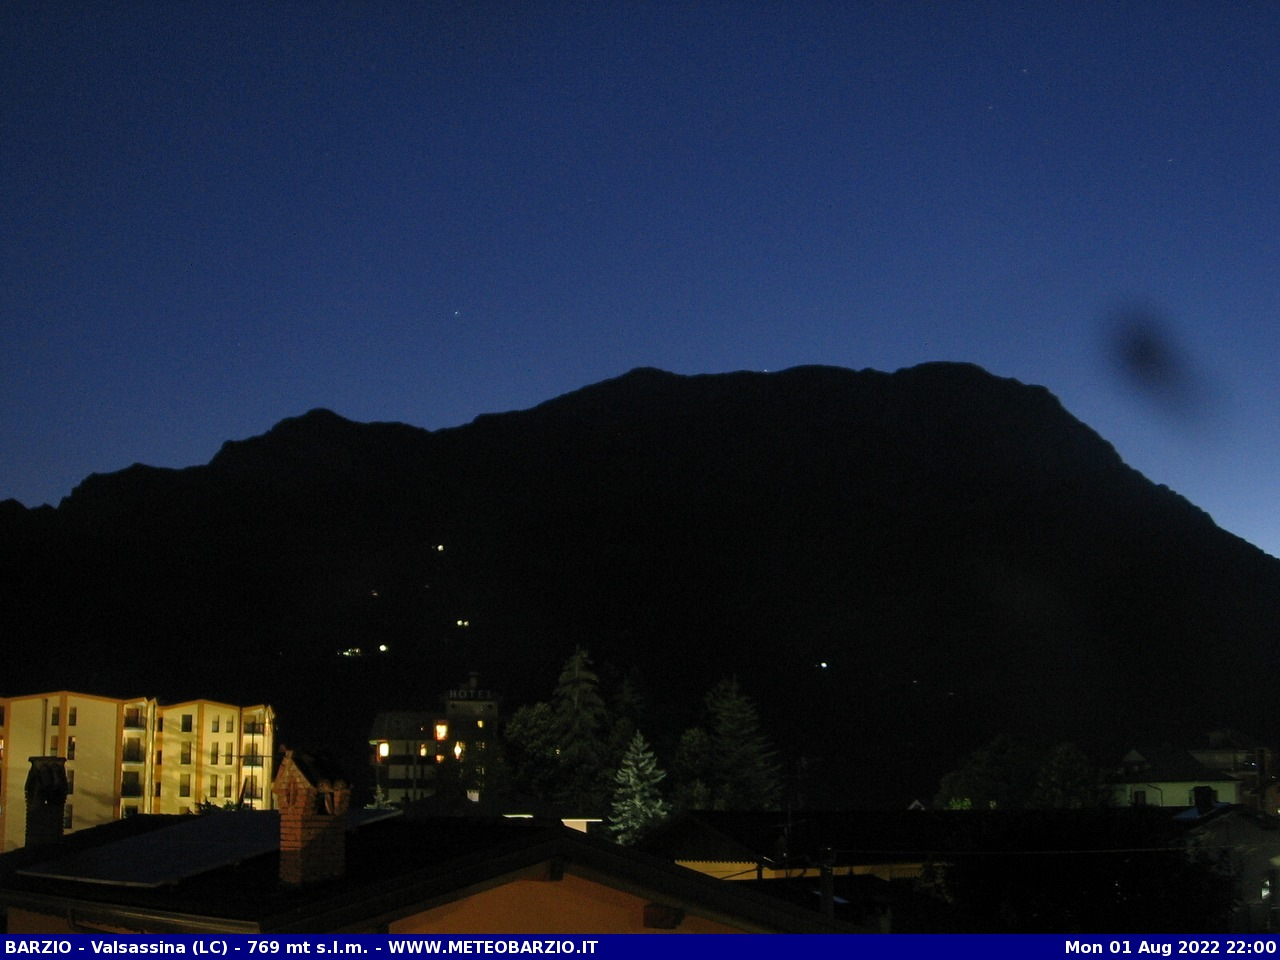 http://www.meteobarzio.it/Webcam/webcam22.php